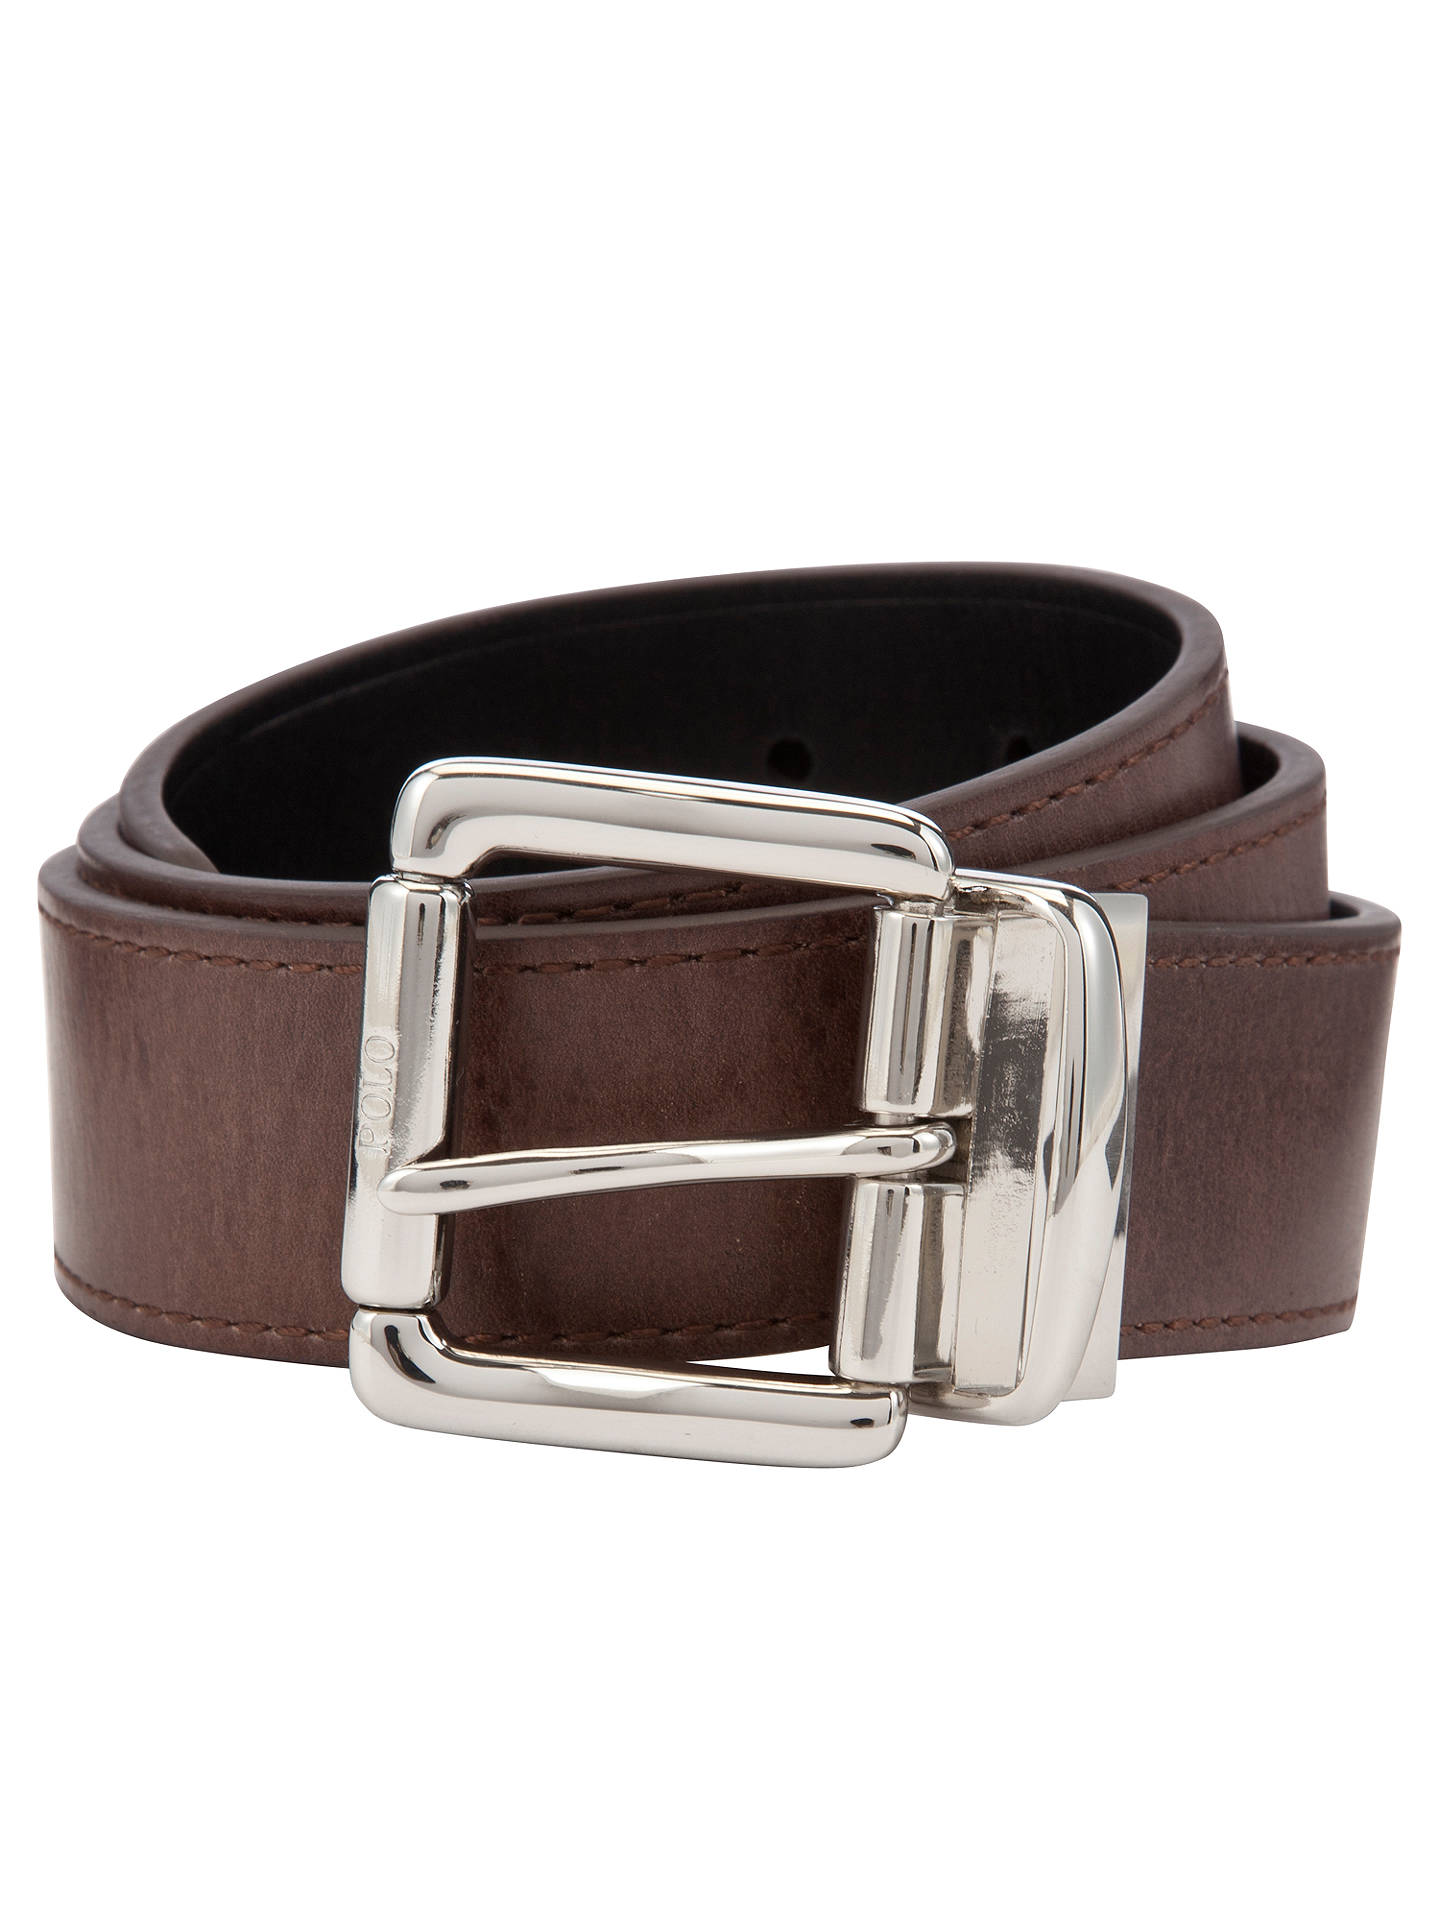 86e9bcfc5088 Buy Polo Ralph Lauren Reversible Leather Belt